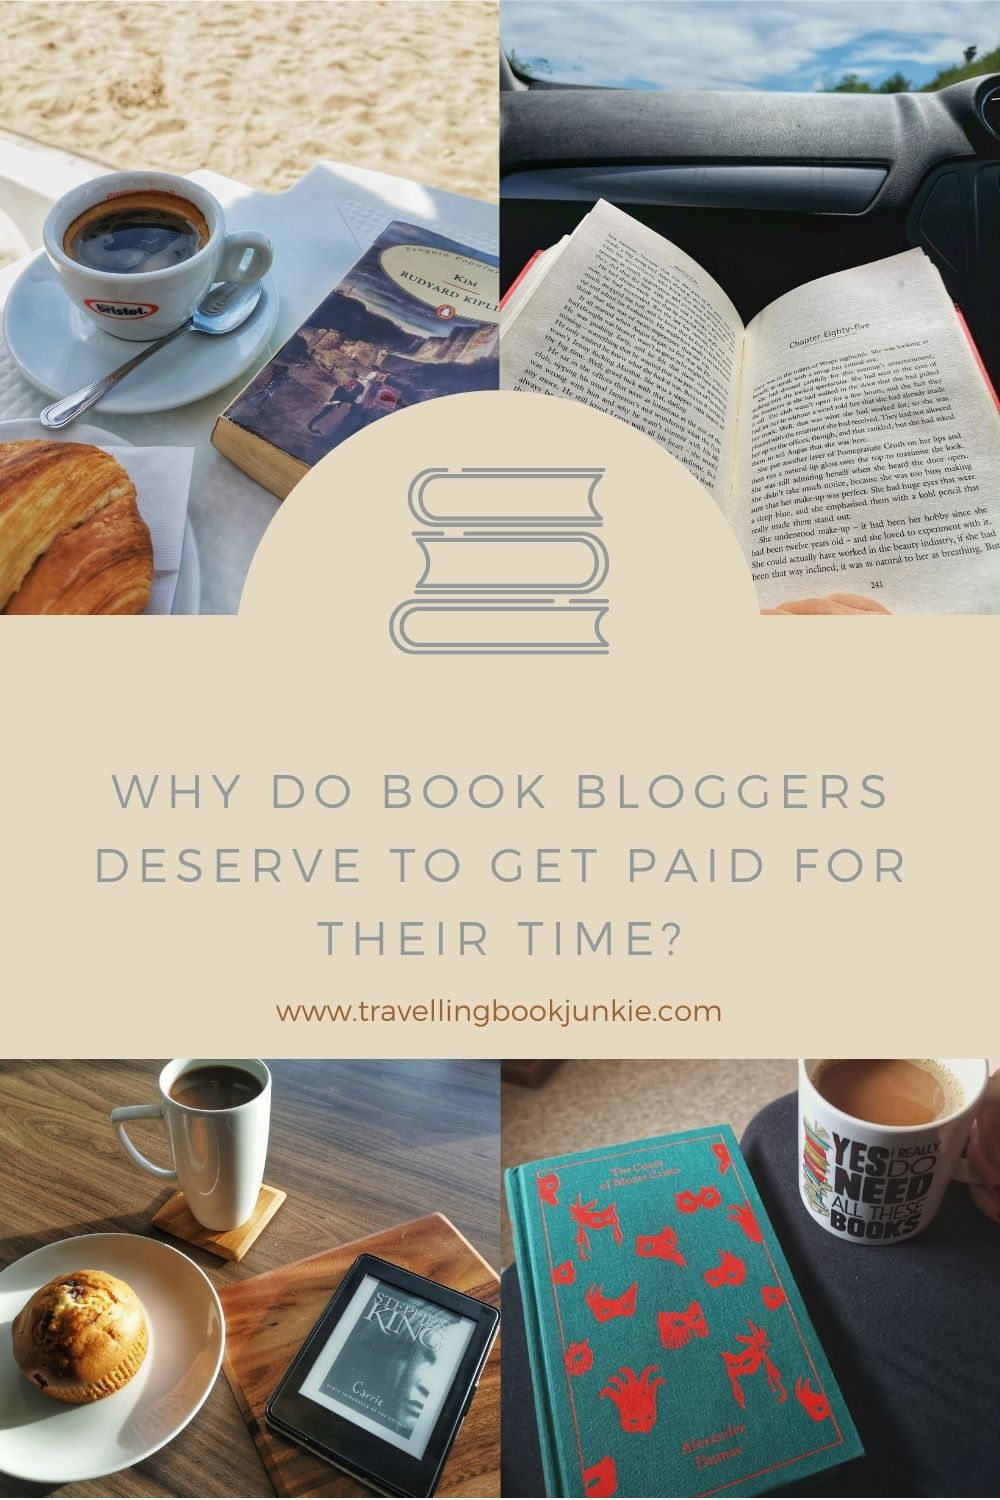 Why do book bloggers deserve to get paid for their time? In this article we explore the way in which book bloggers are losing out on money and how their time deserves to be compensated. Via @tbookjunkie